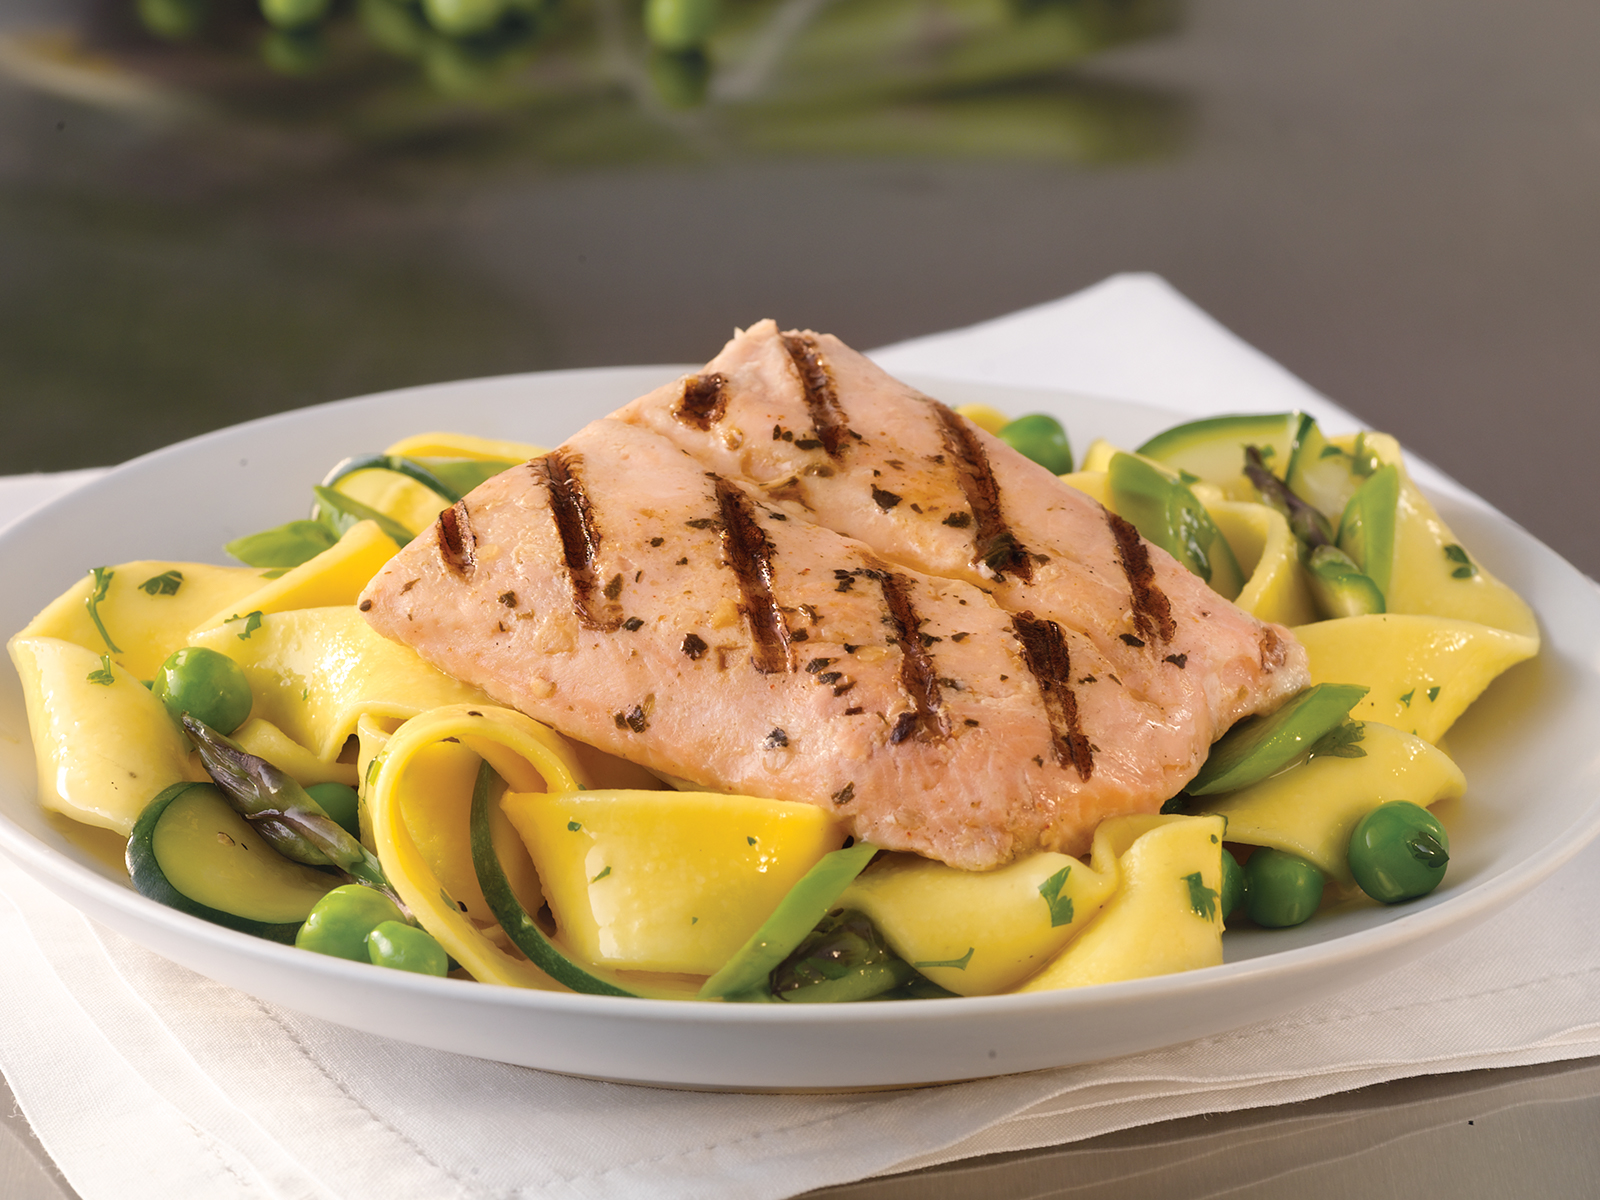 Redi Grilled™ Fully Cooked Salmon 3 oz Portions (10/12oz) 416748